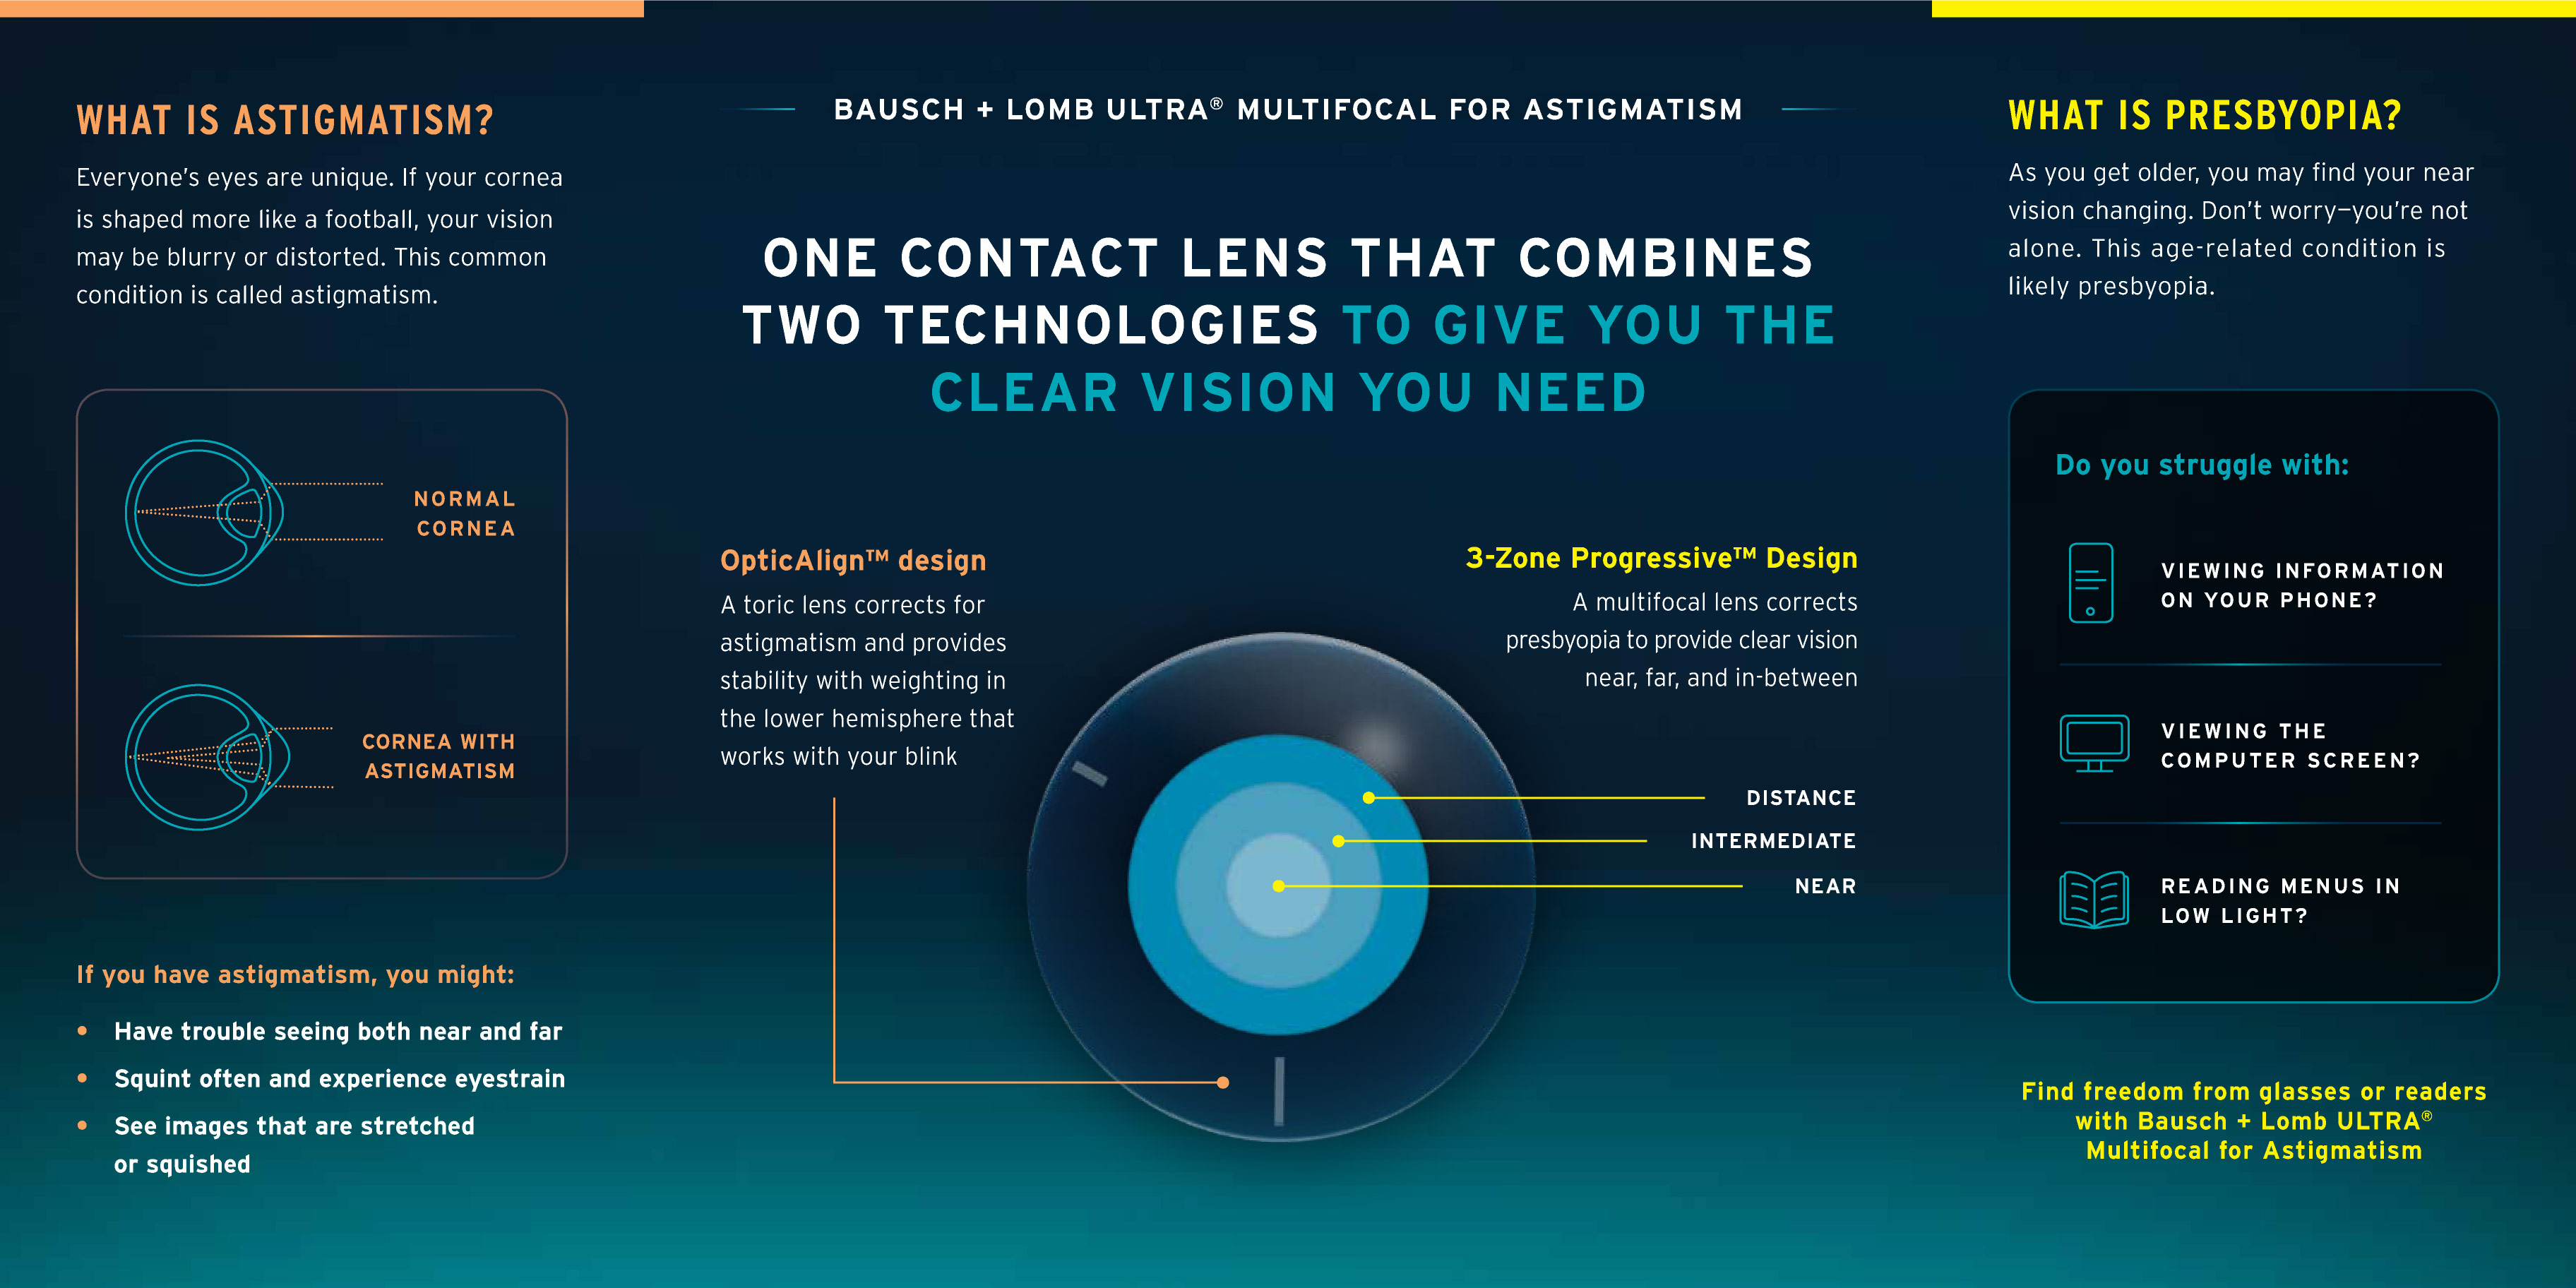 Descriptive sheet of the Bausch & Lomb ULTRA Multifocal for Astigmatism lenses.